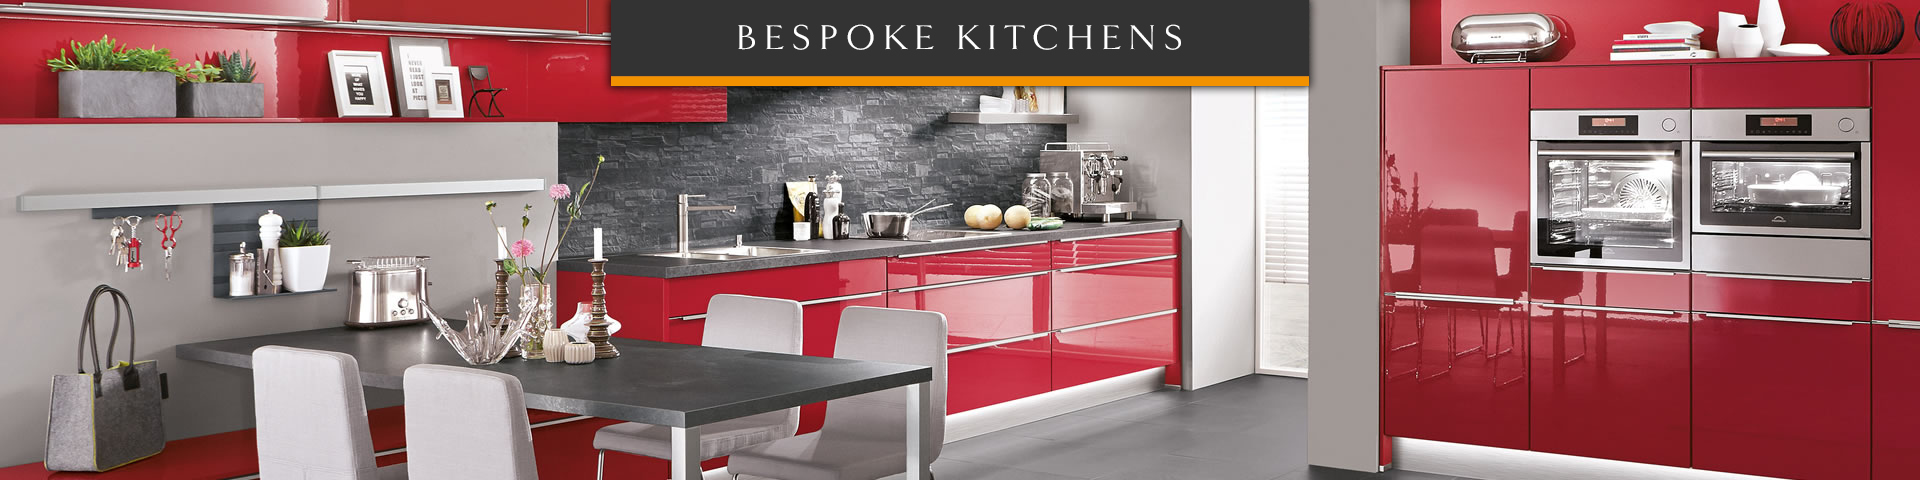 Bespoke Kitchens Lanarkshire